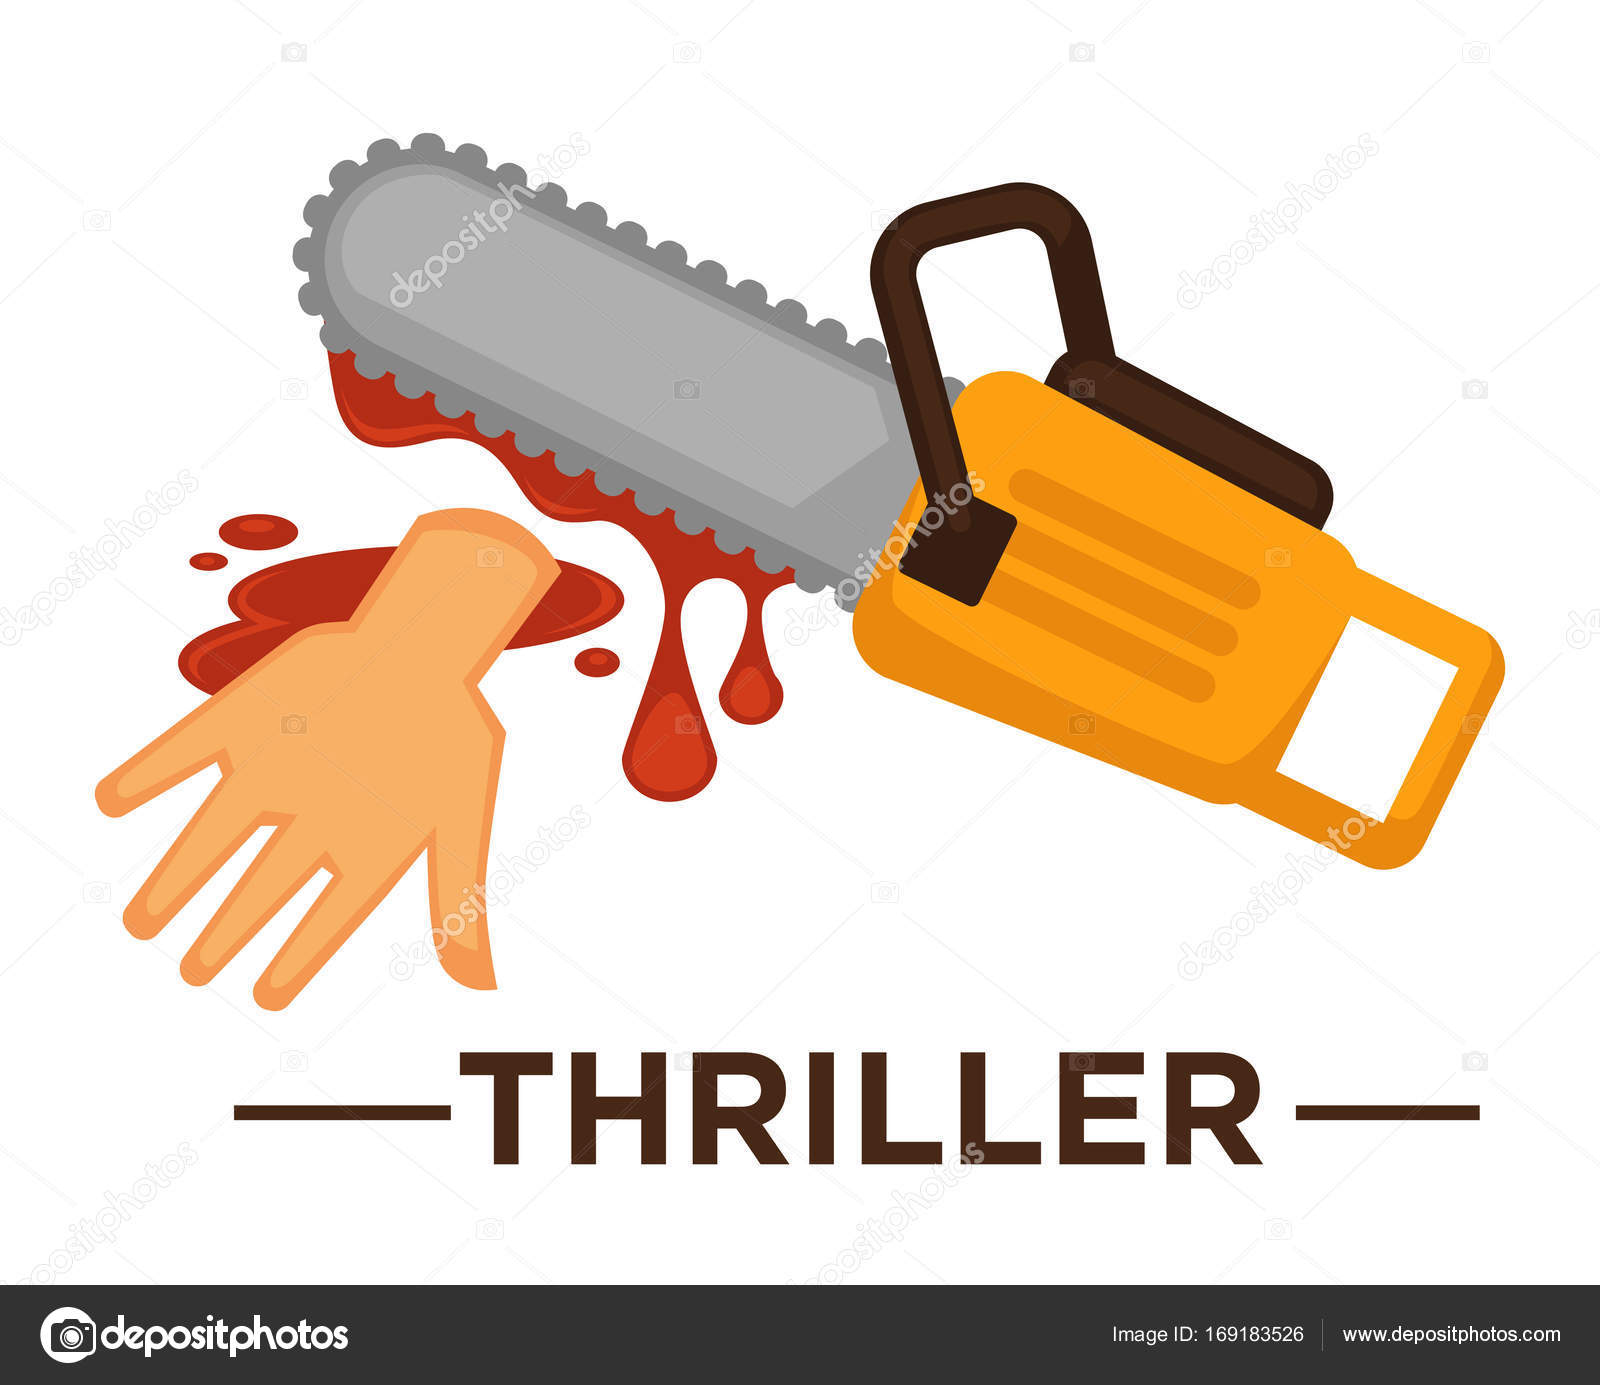 Movie thriller genre icon stock vector sonulkaster 169183526 movie thriller genre icon with saw and hand in blood symbols for cinema or channel movie genre tag vector by sonulkaster biocorpaavc